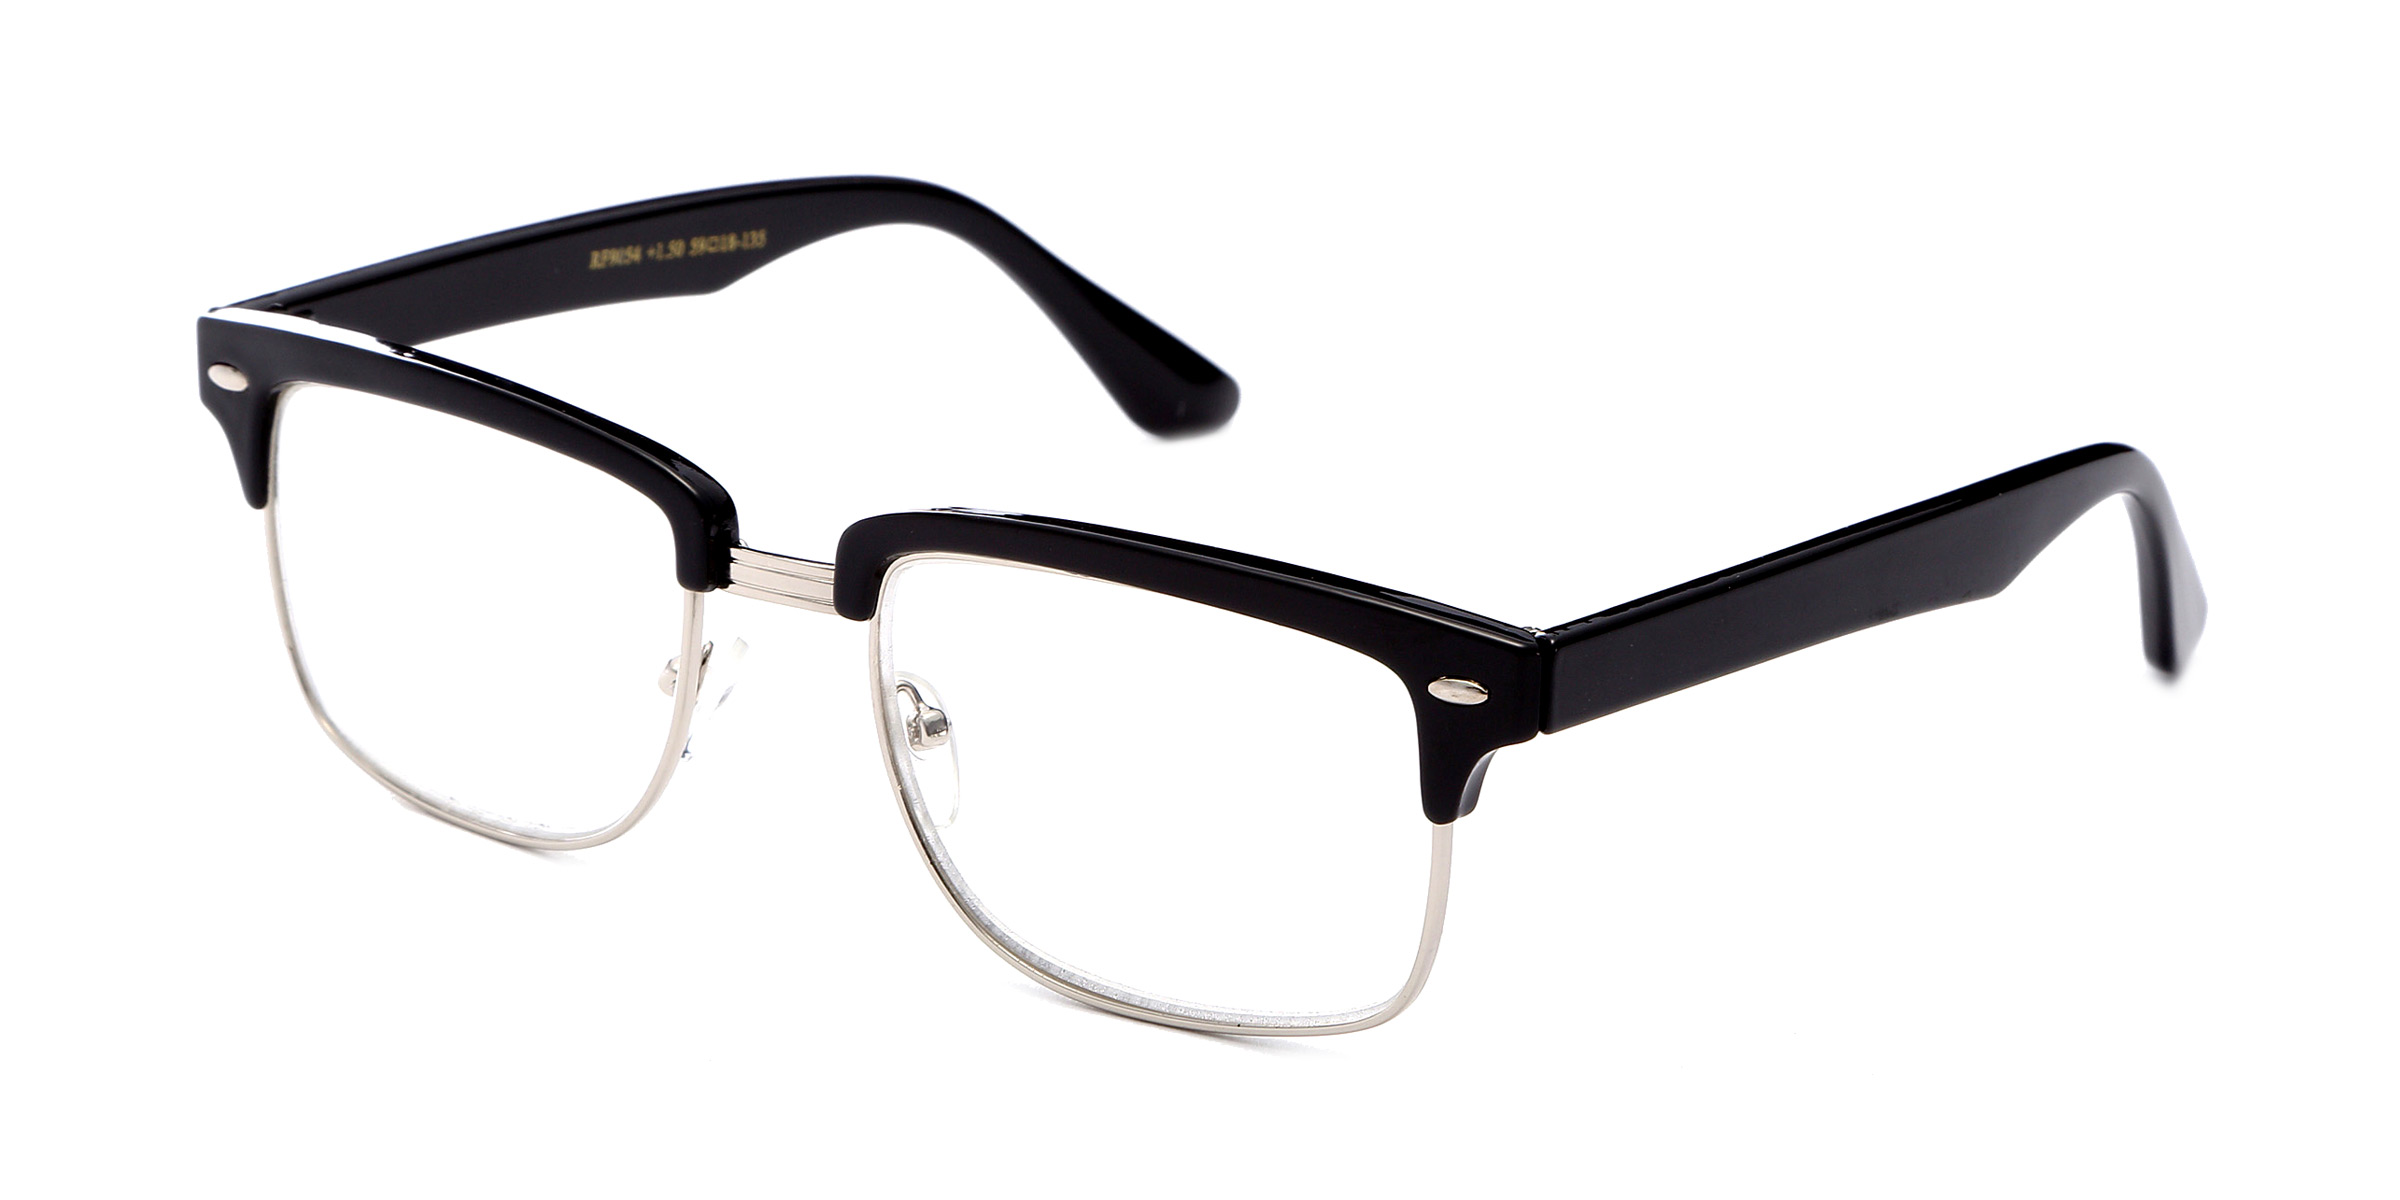 New Rectangular Half Frame Vintage Style Reading ...